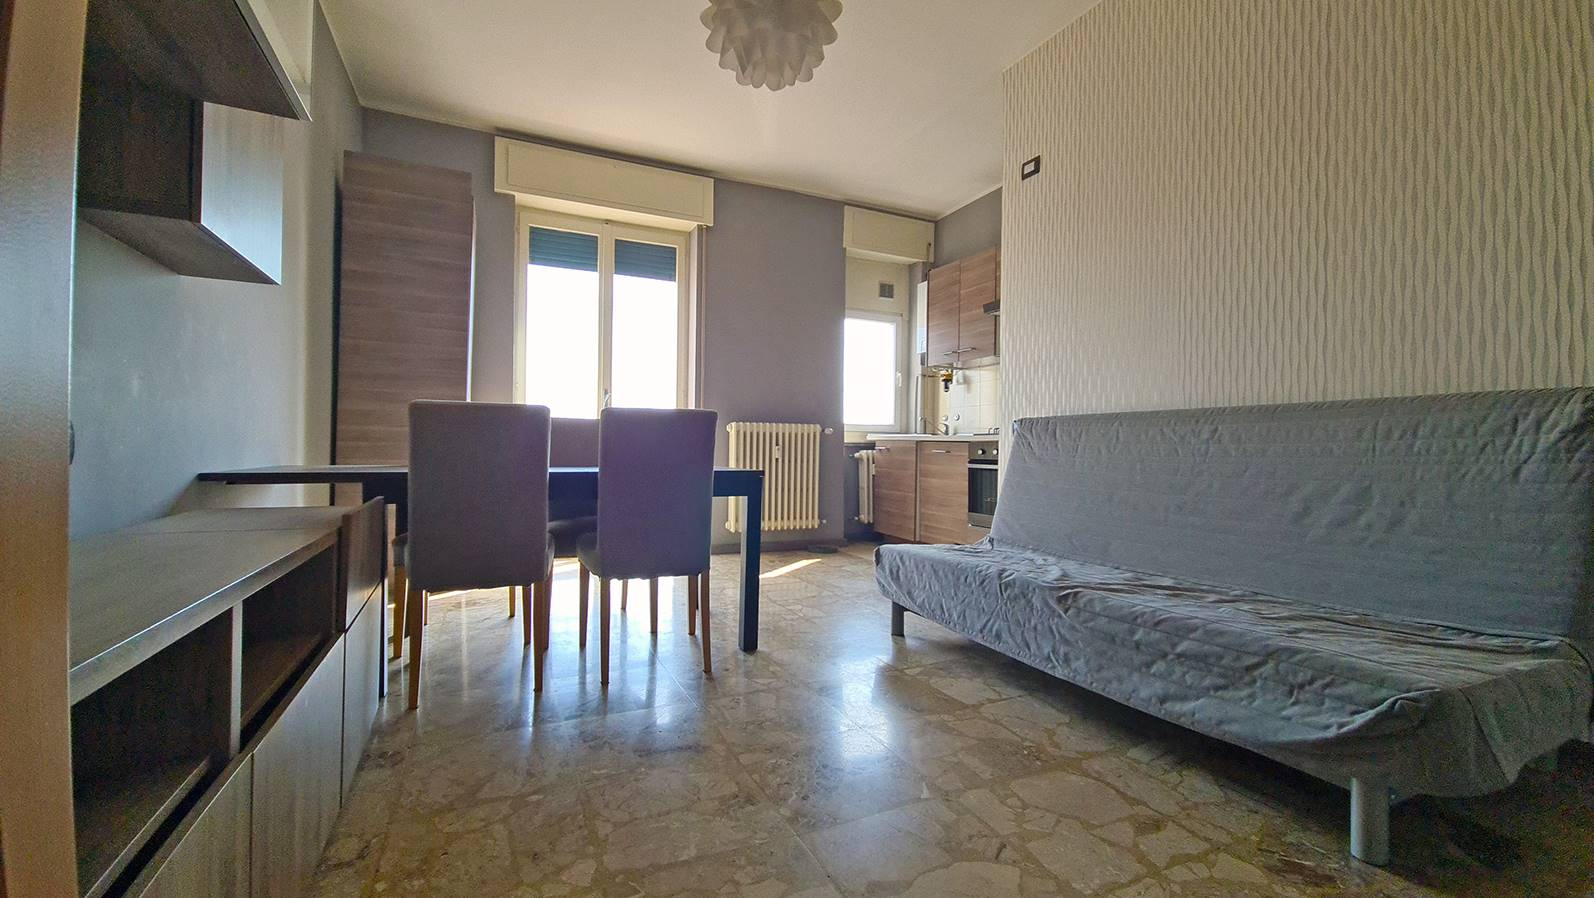 BRUGHERIO, Apartment for sale of 65 Sq. mt., Habitable, Heating Centralized, Energetic class: G, Epi: 254,63 kwh/m2 year, placed at 4° on 5, composed